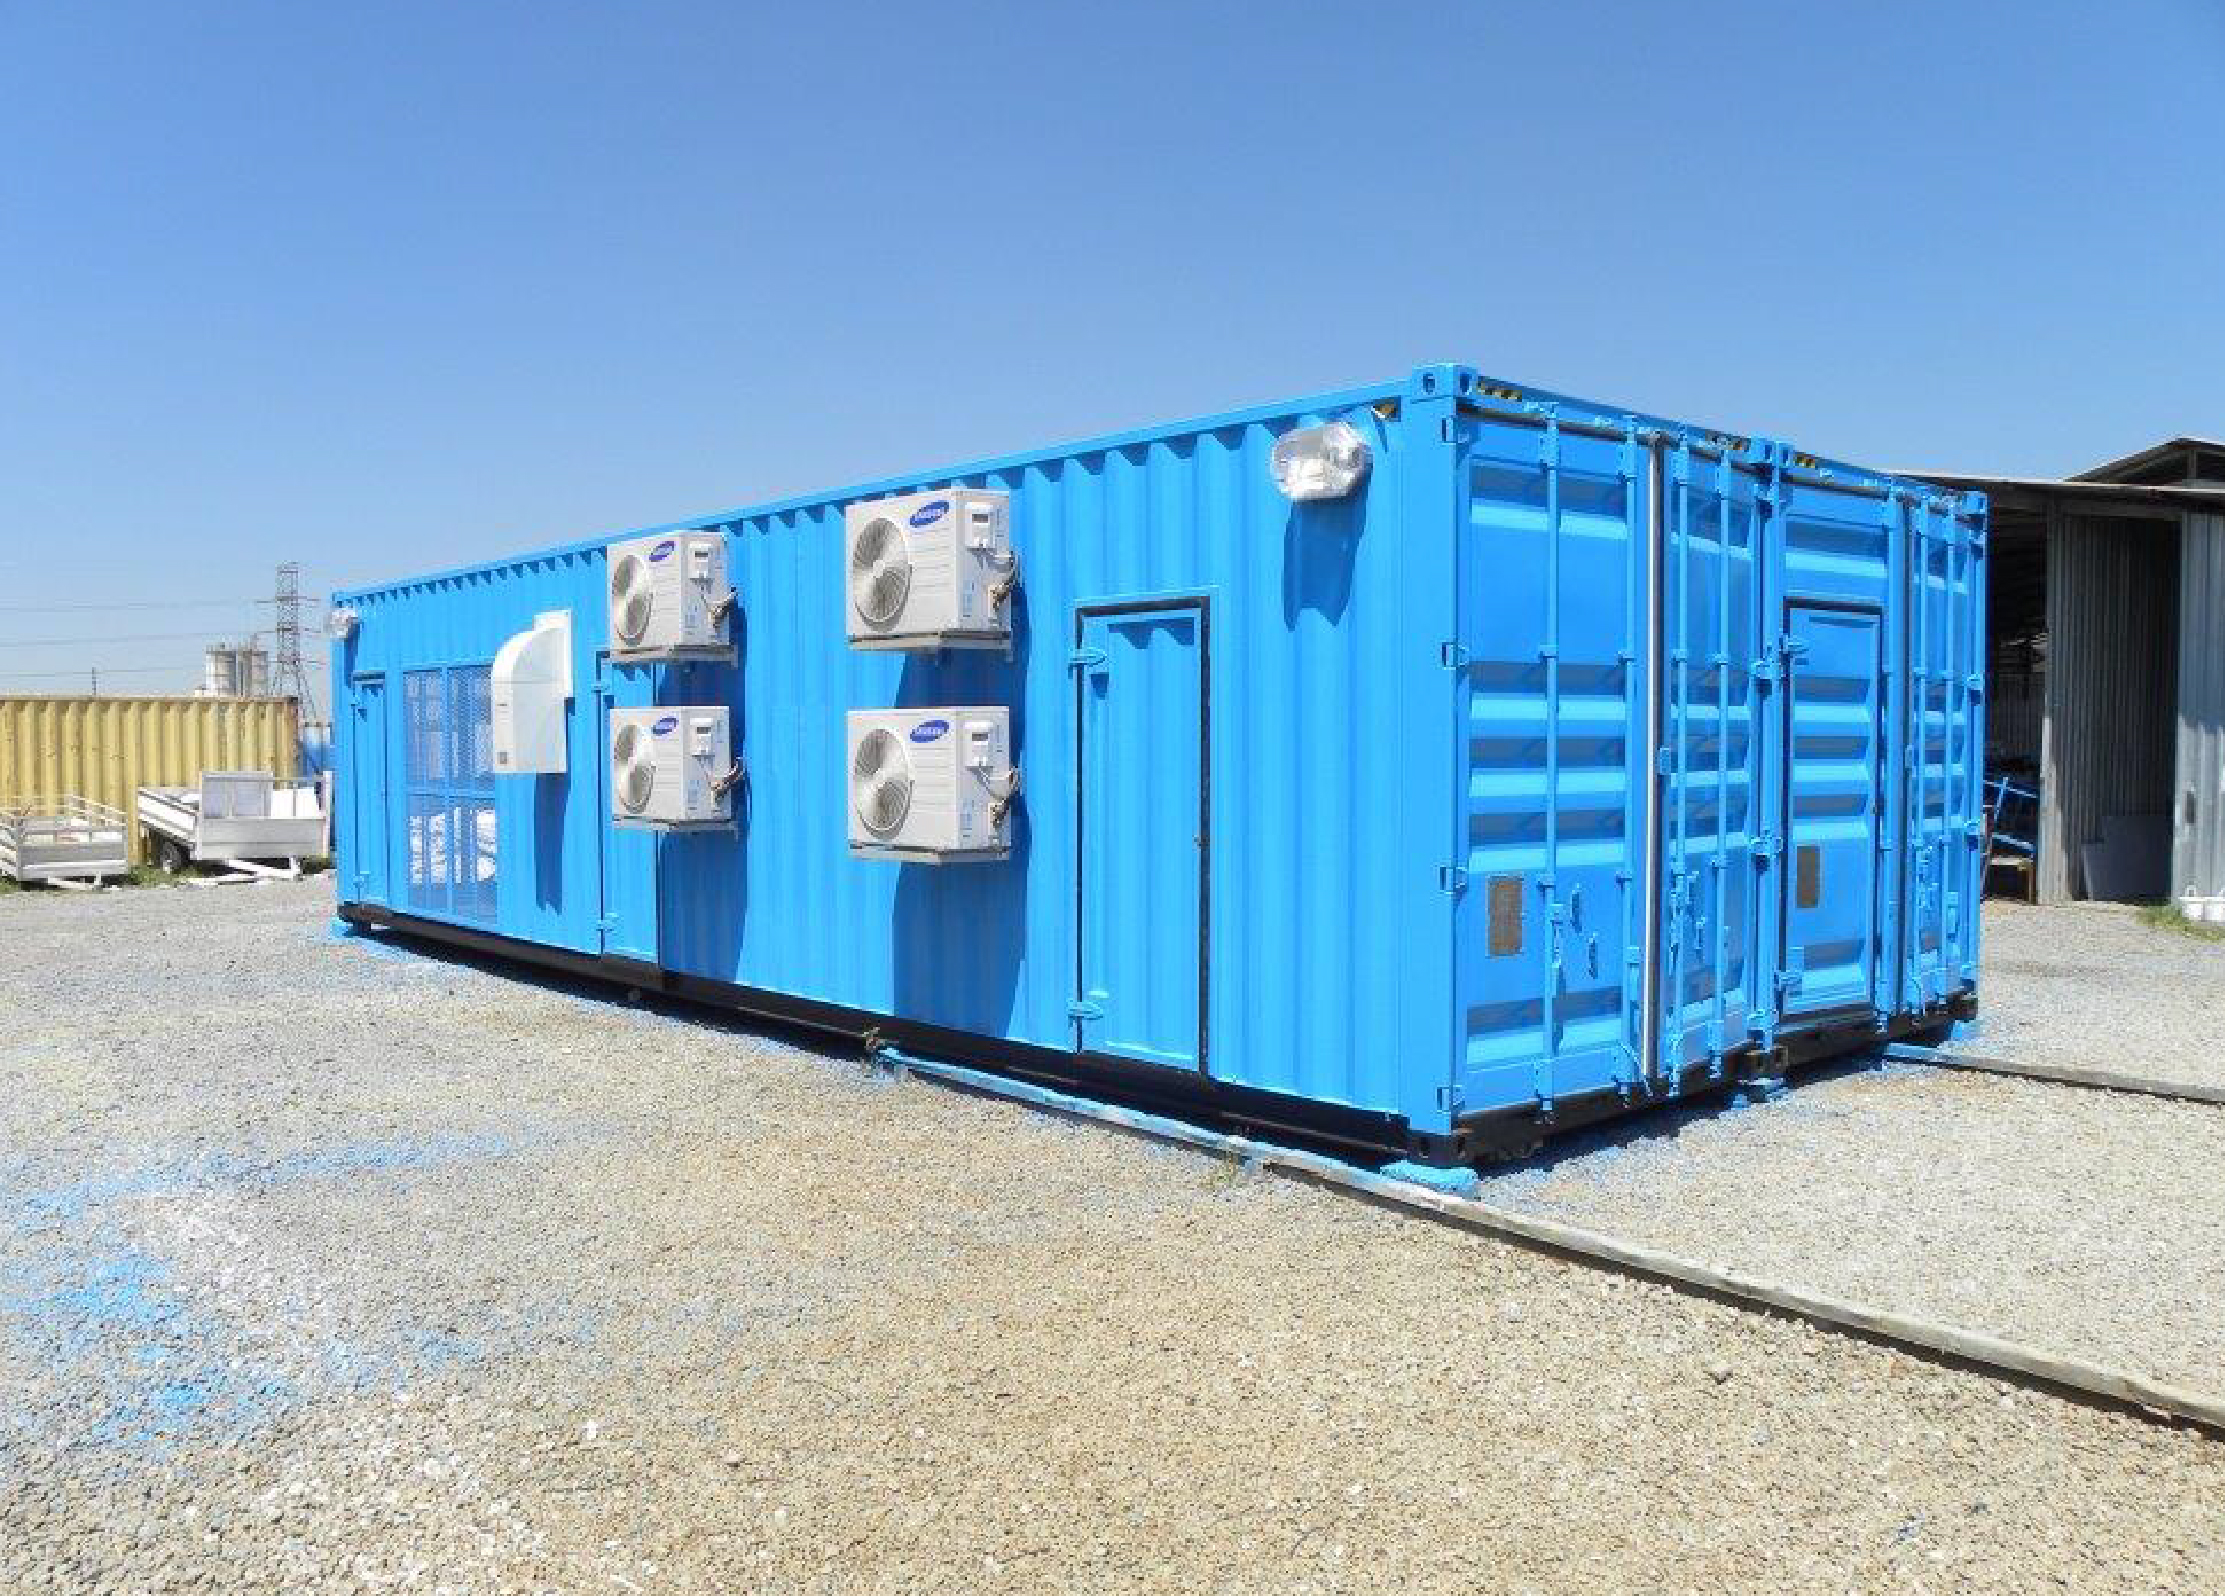 Container Rooms mcc rooms - a&a containers (pty) ltd